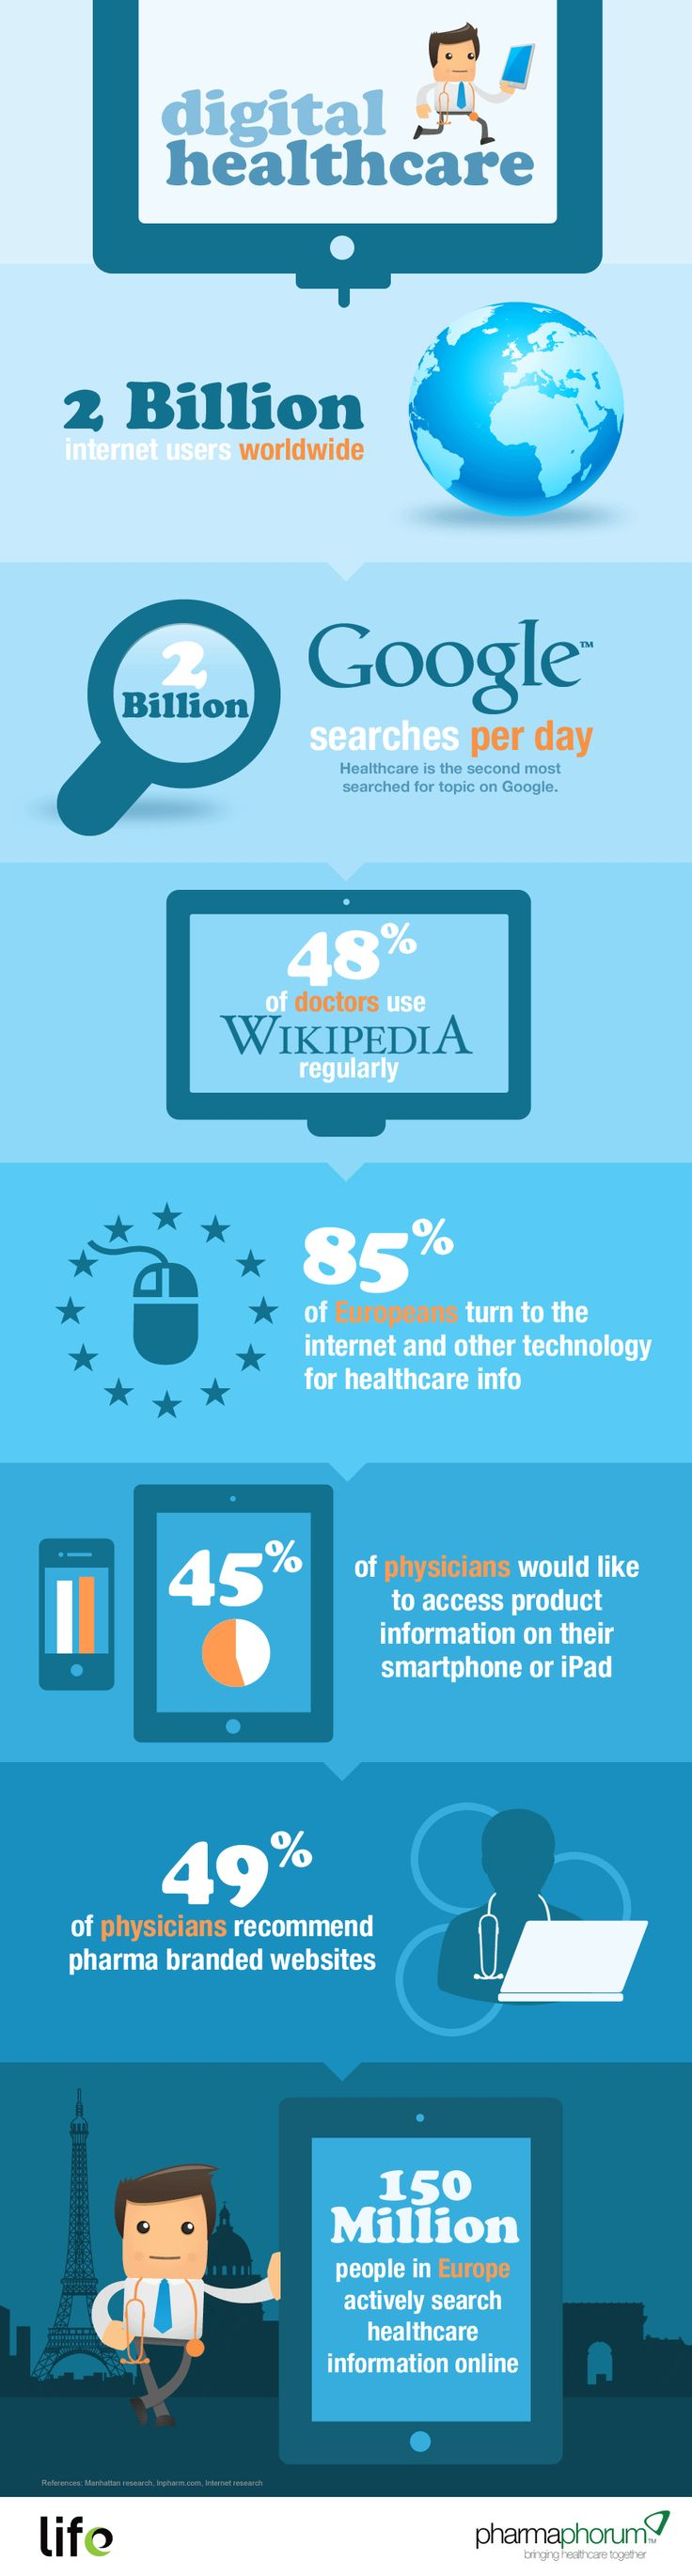 Digital Healthcare [INFOGRAPHIC]